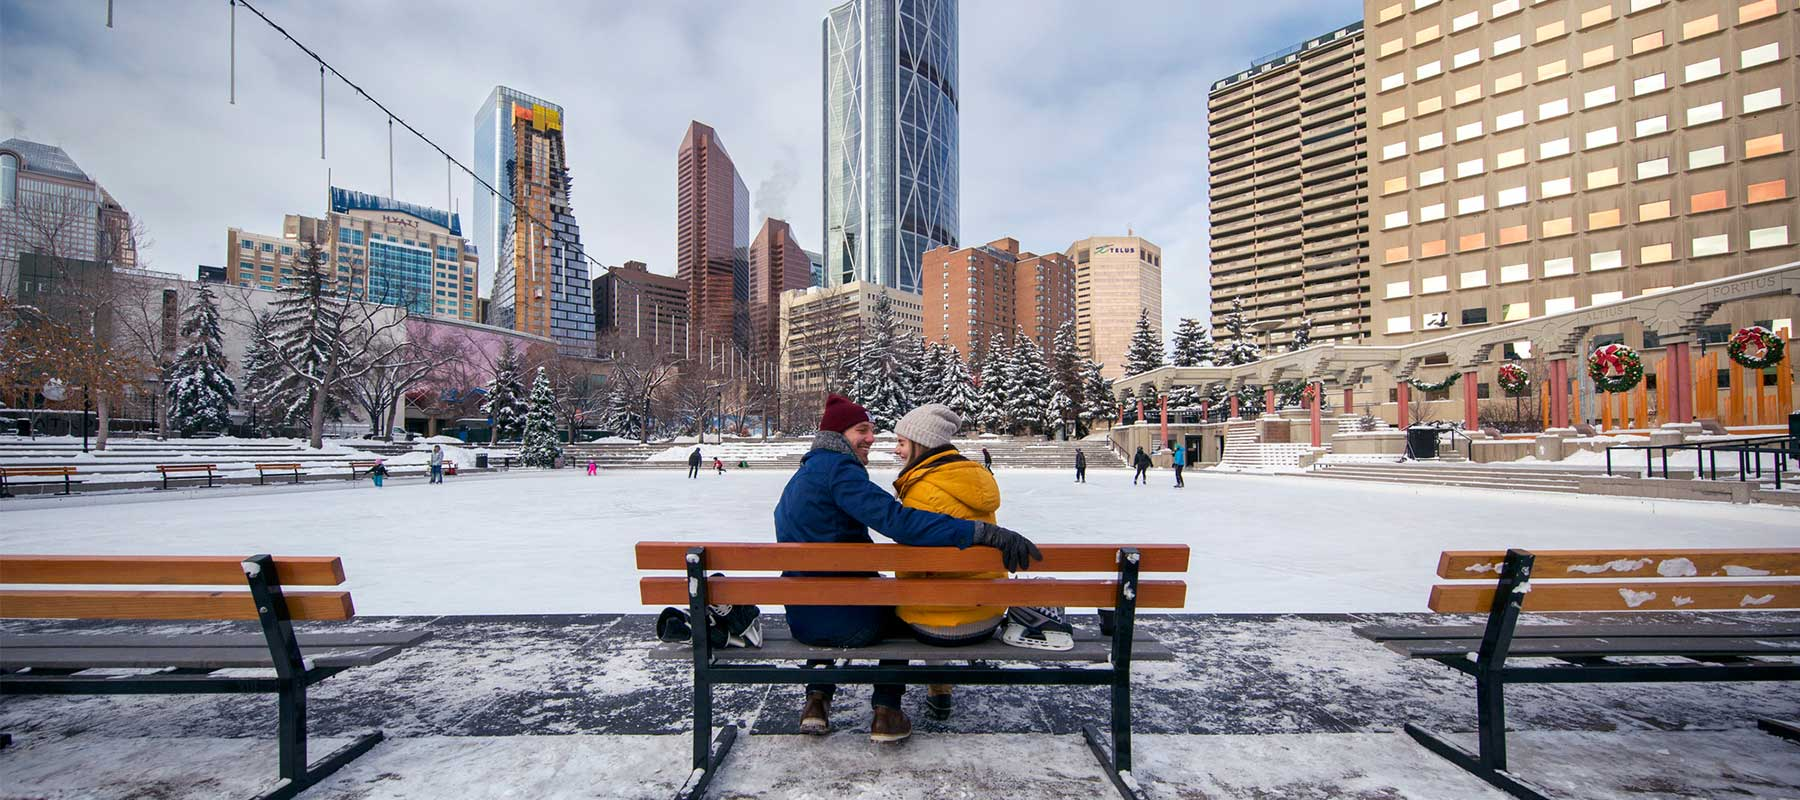 Canada By Design Vacations | Winter in Calgary